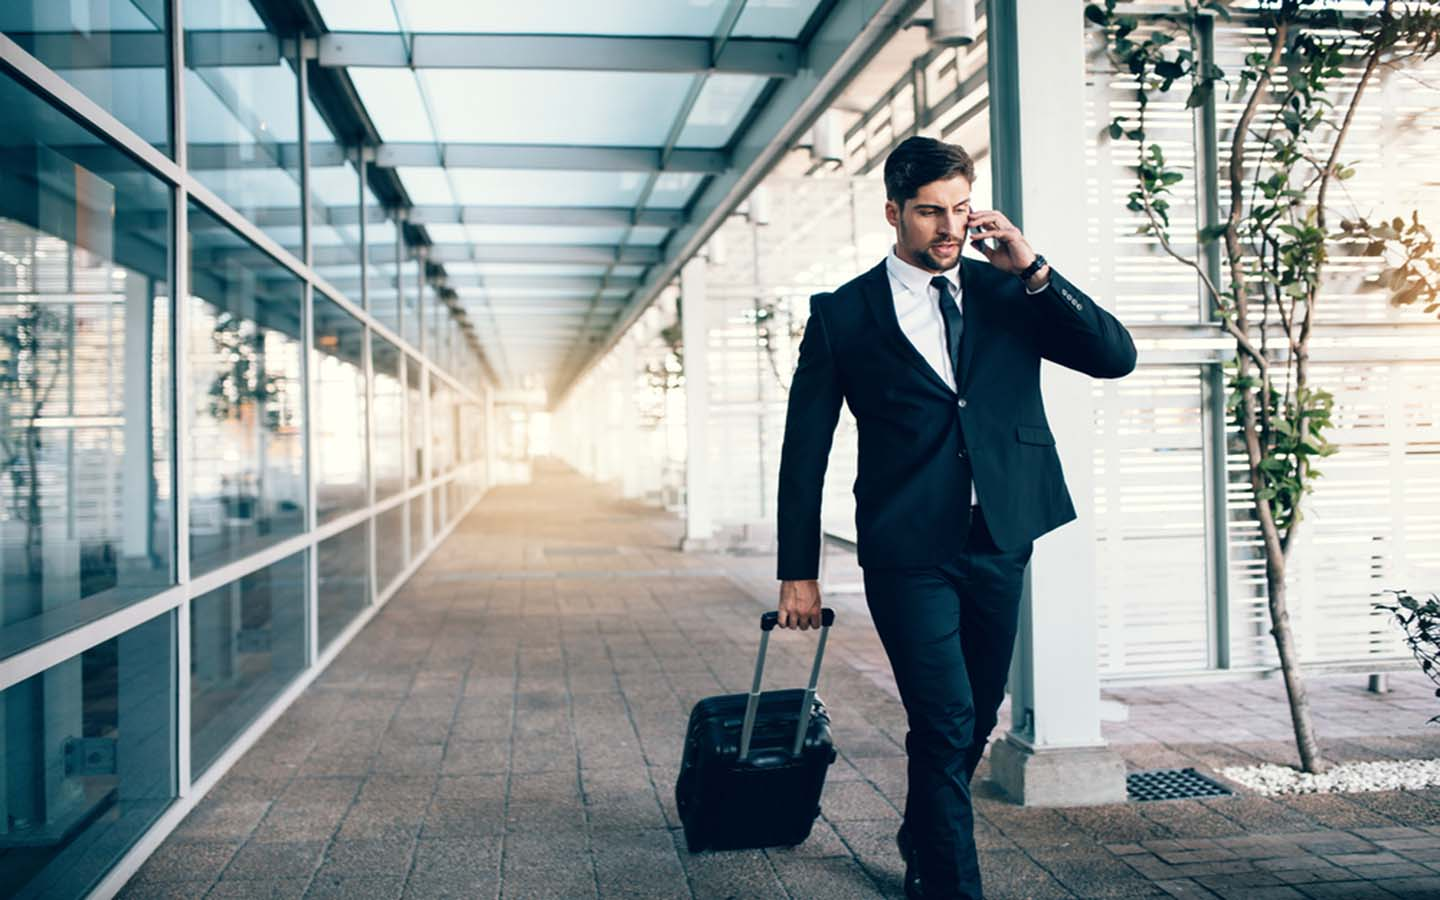 man on a business trip